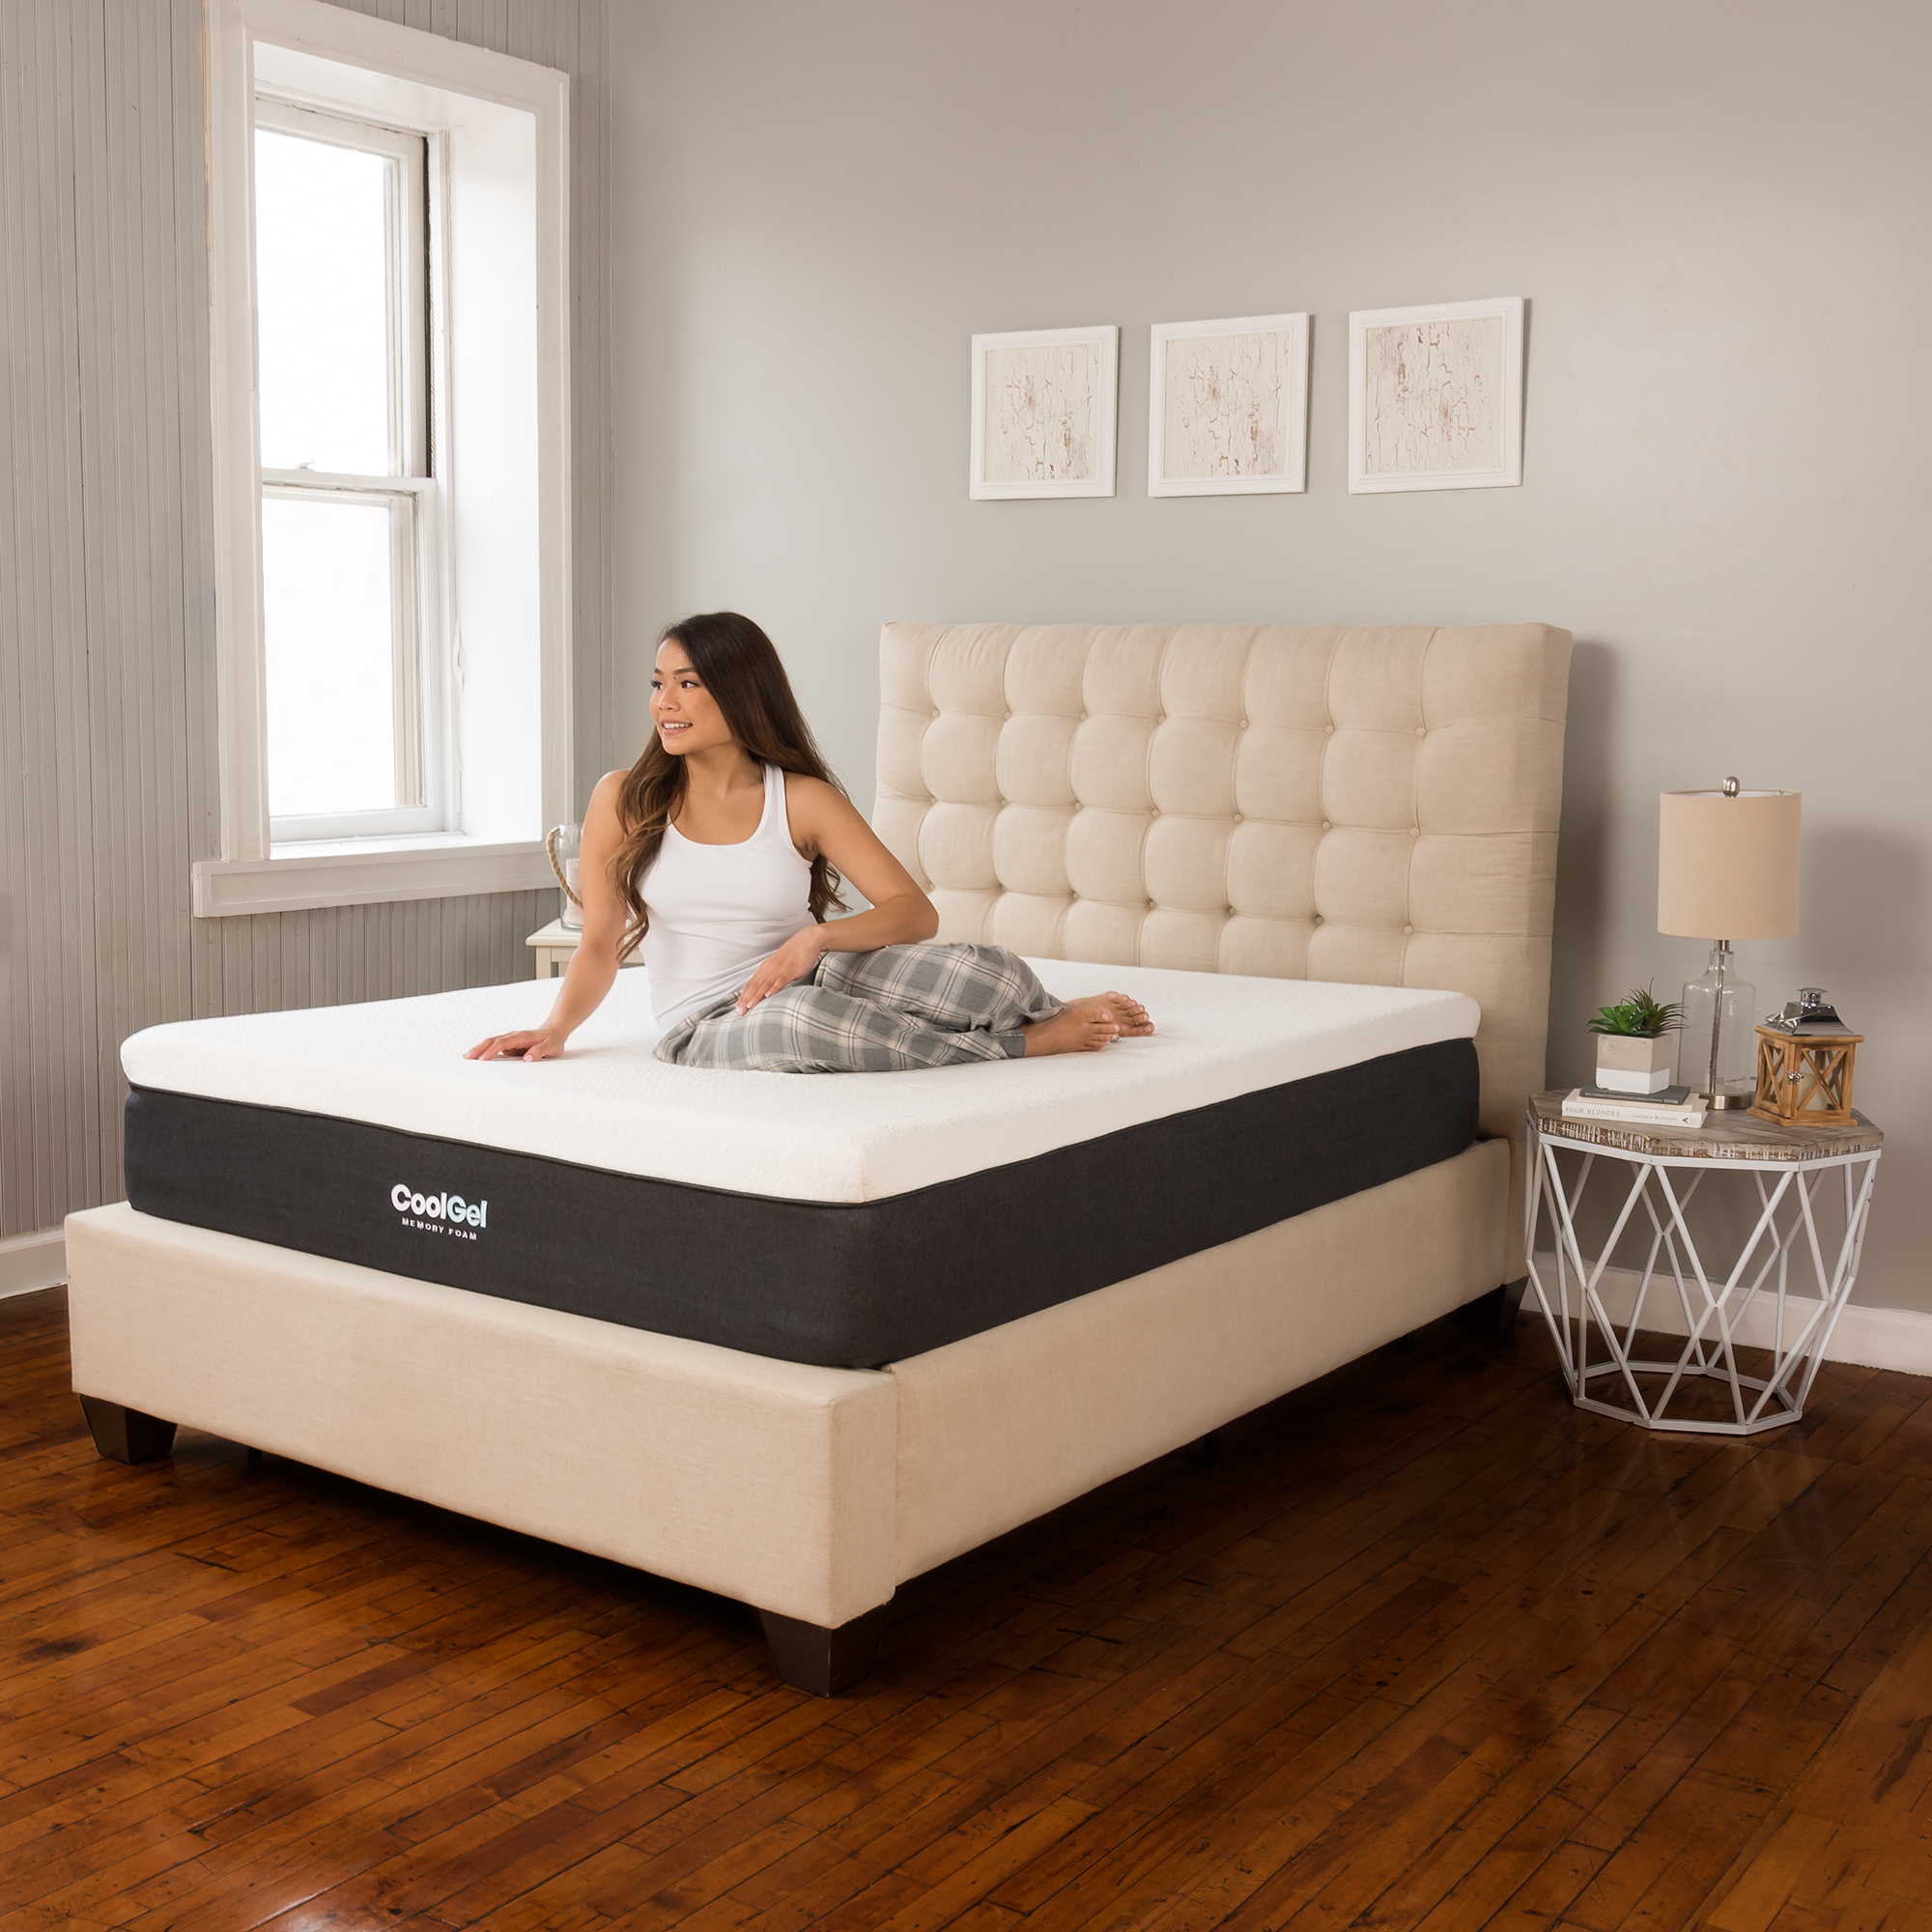 sleep ultimate live new mattress resort amazon inch brands king of plush size cool classic memory gel breeze and fort dynastymattress foam